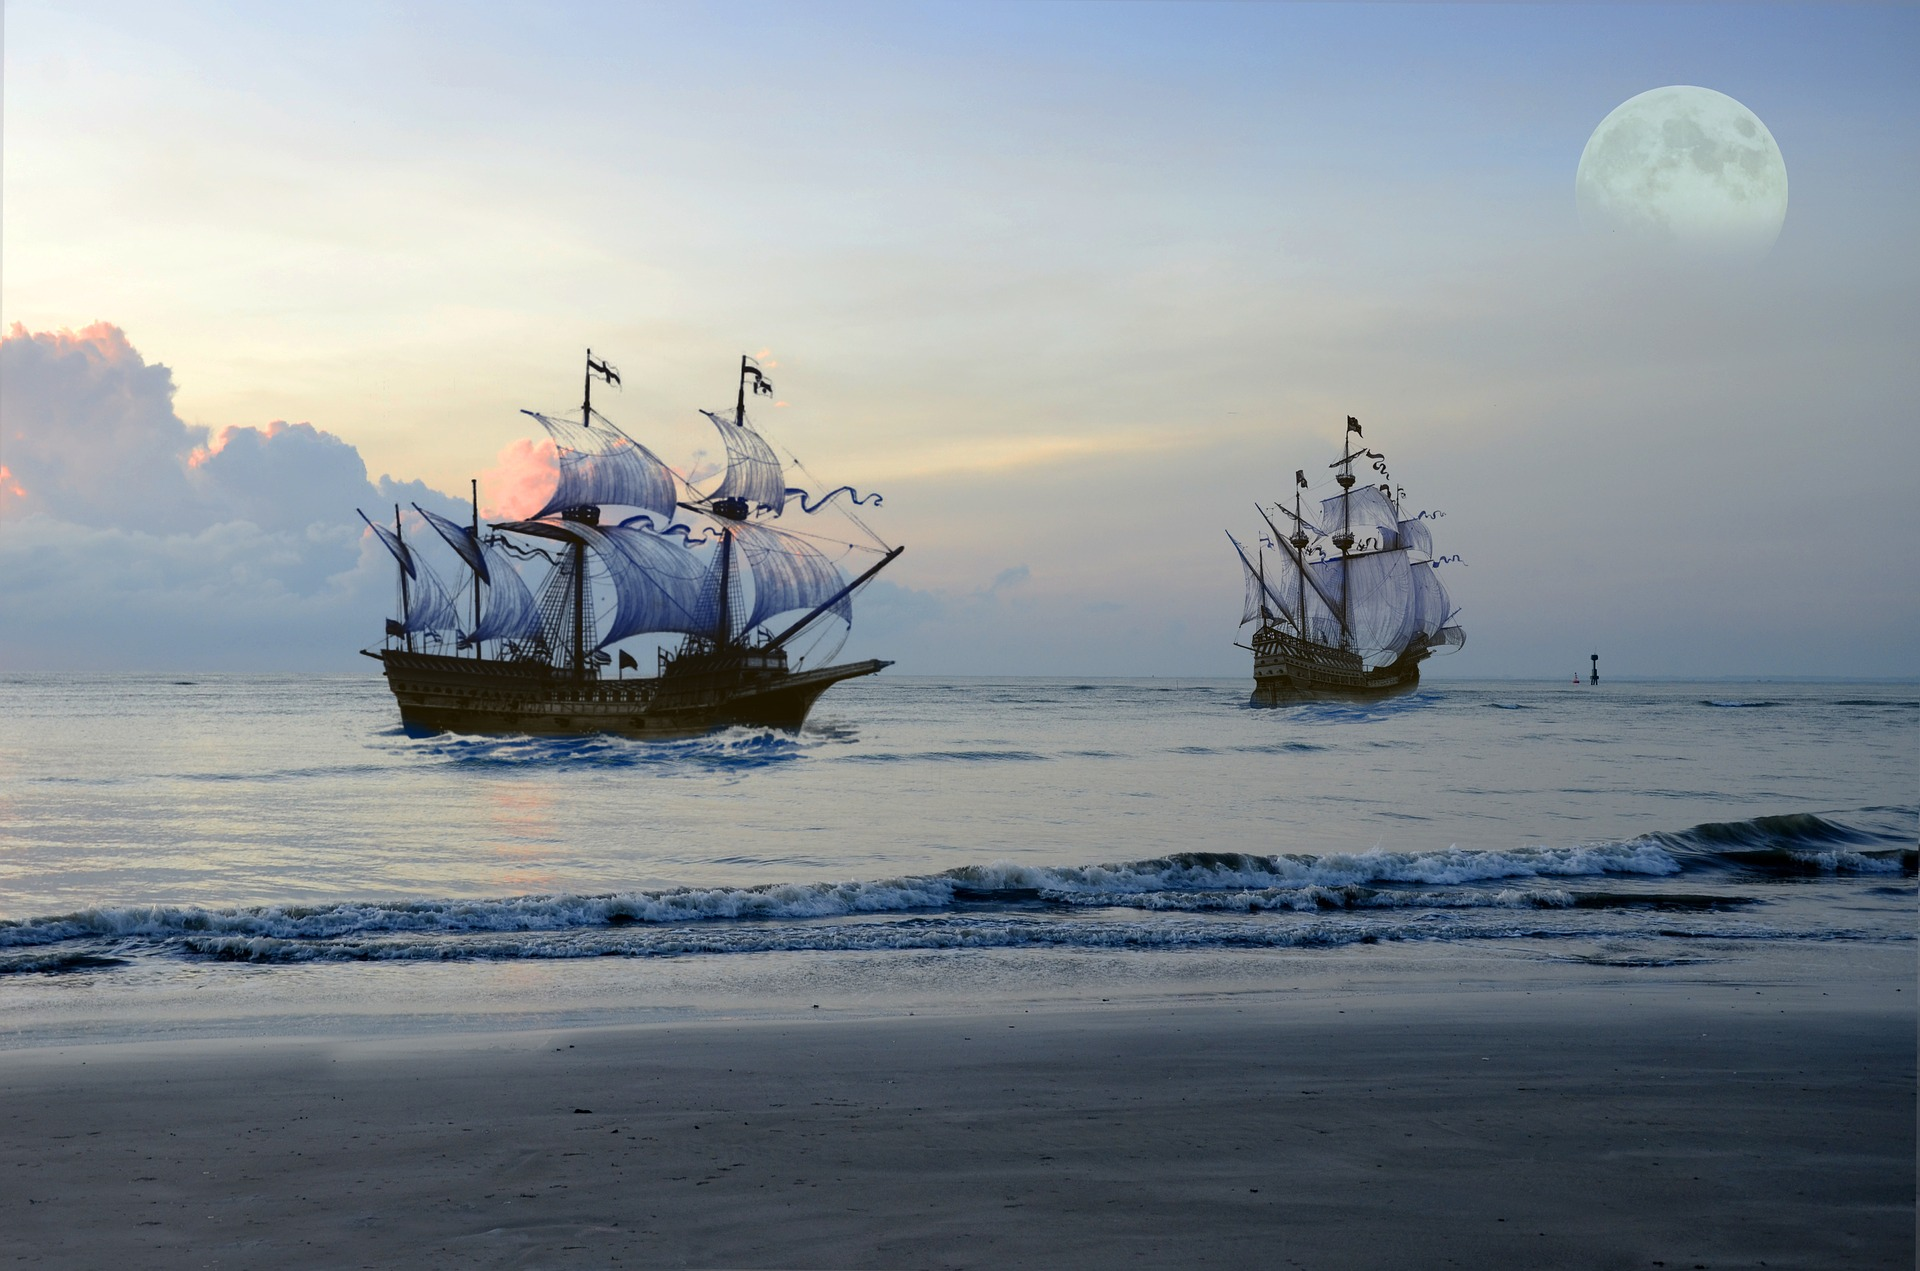 Two pirate ships